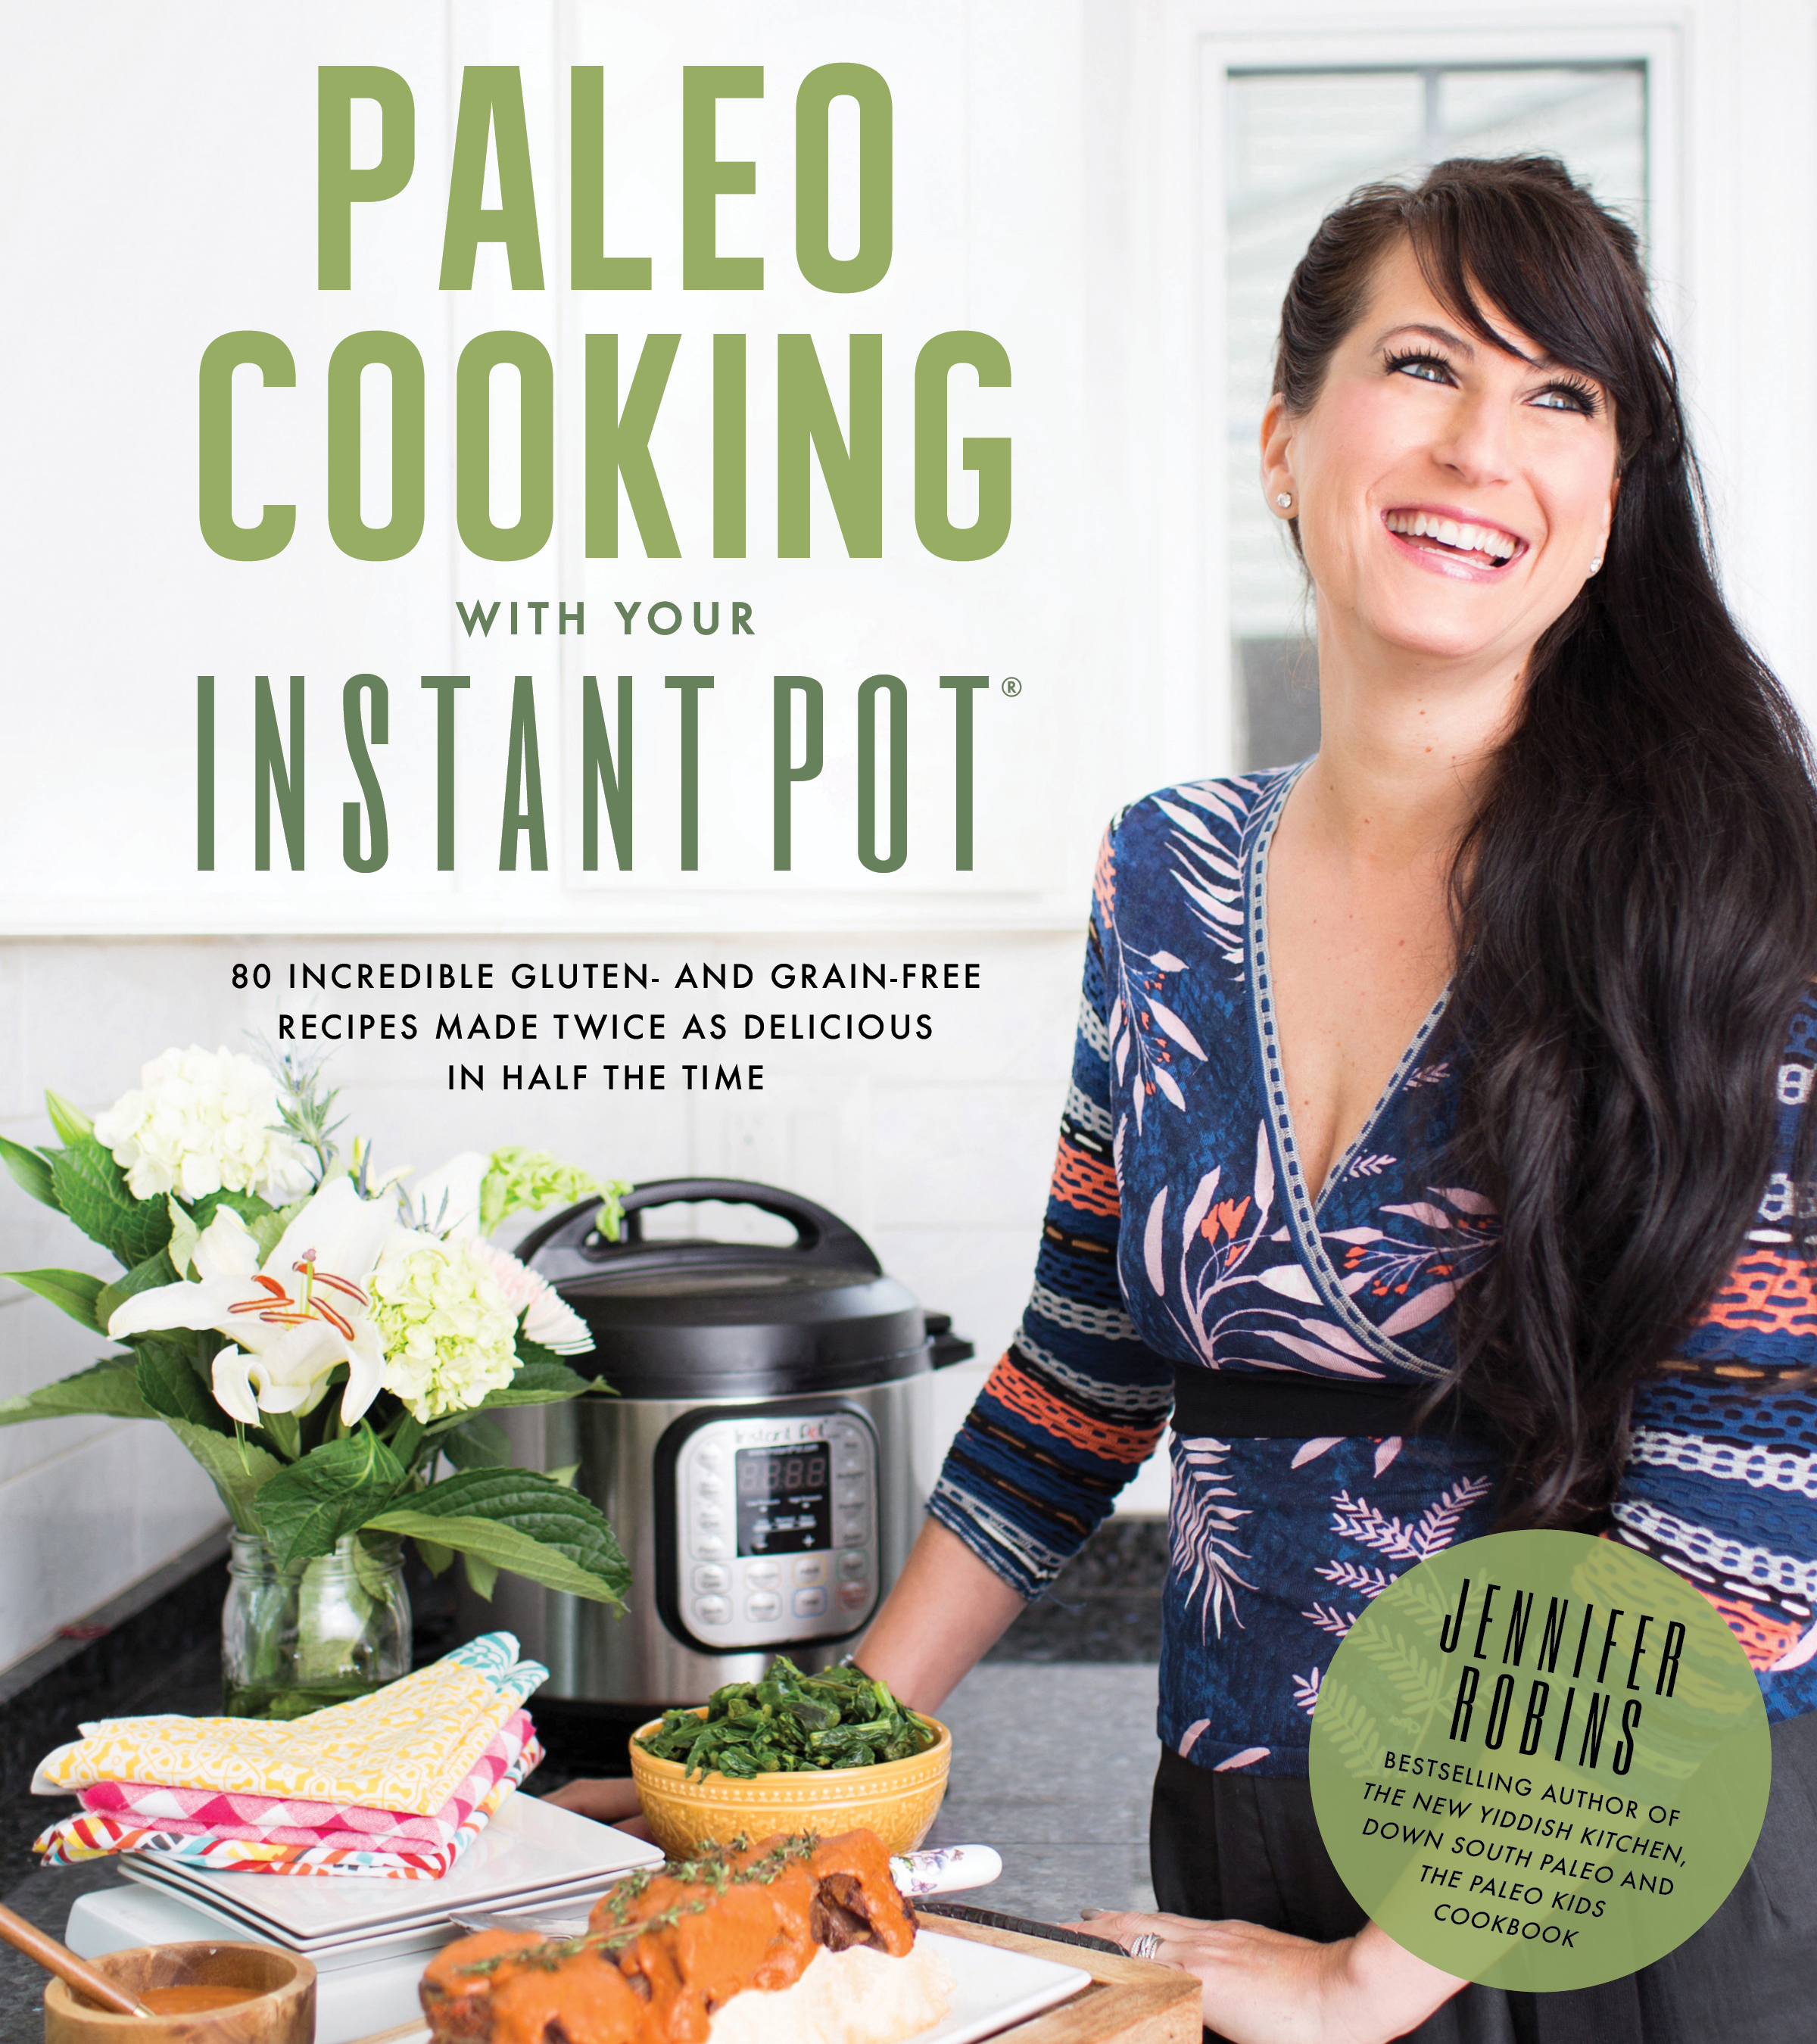 TROUBLESHOOTING PALEO RECIPES FOR YOUR INSTANT POT